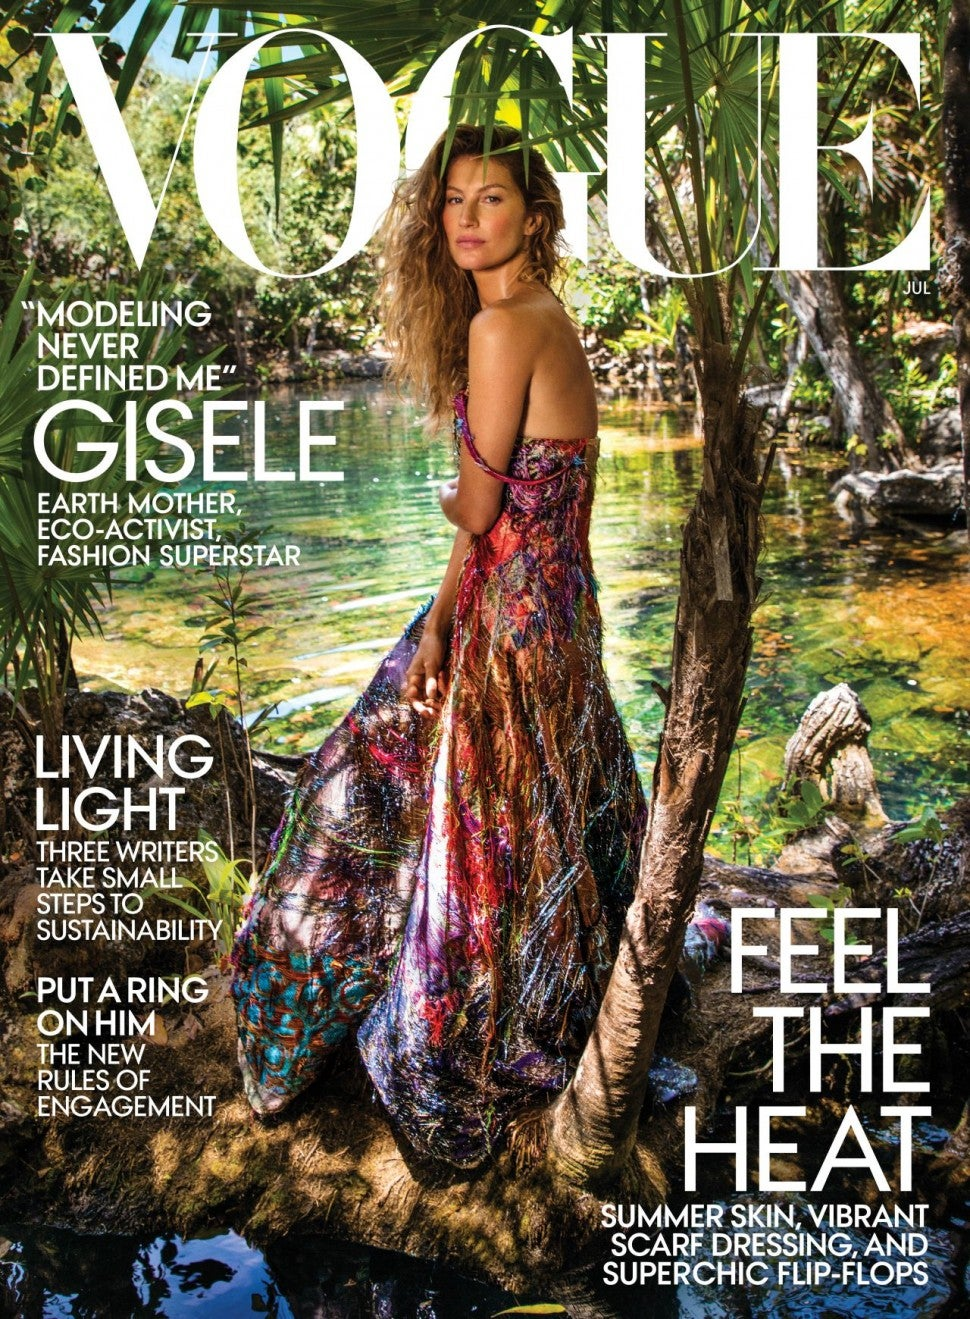 Gisele Bundchen in Vogue